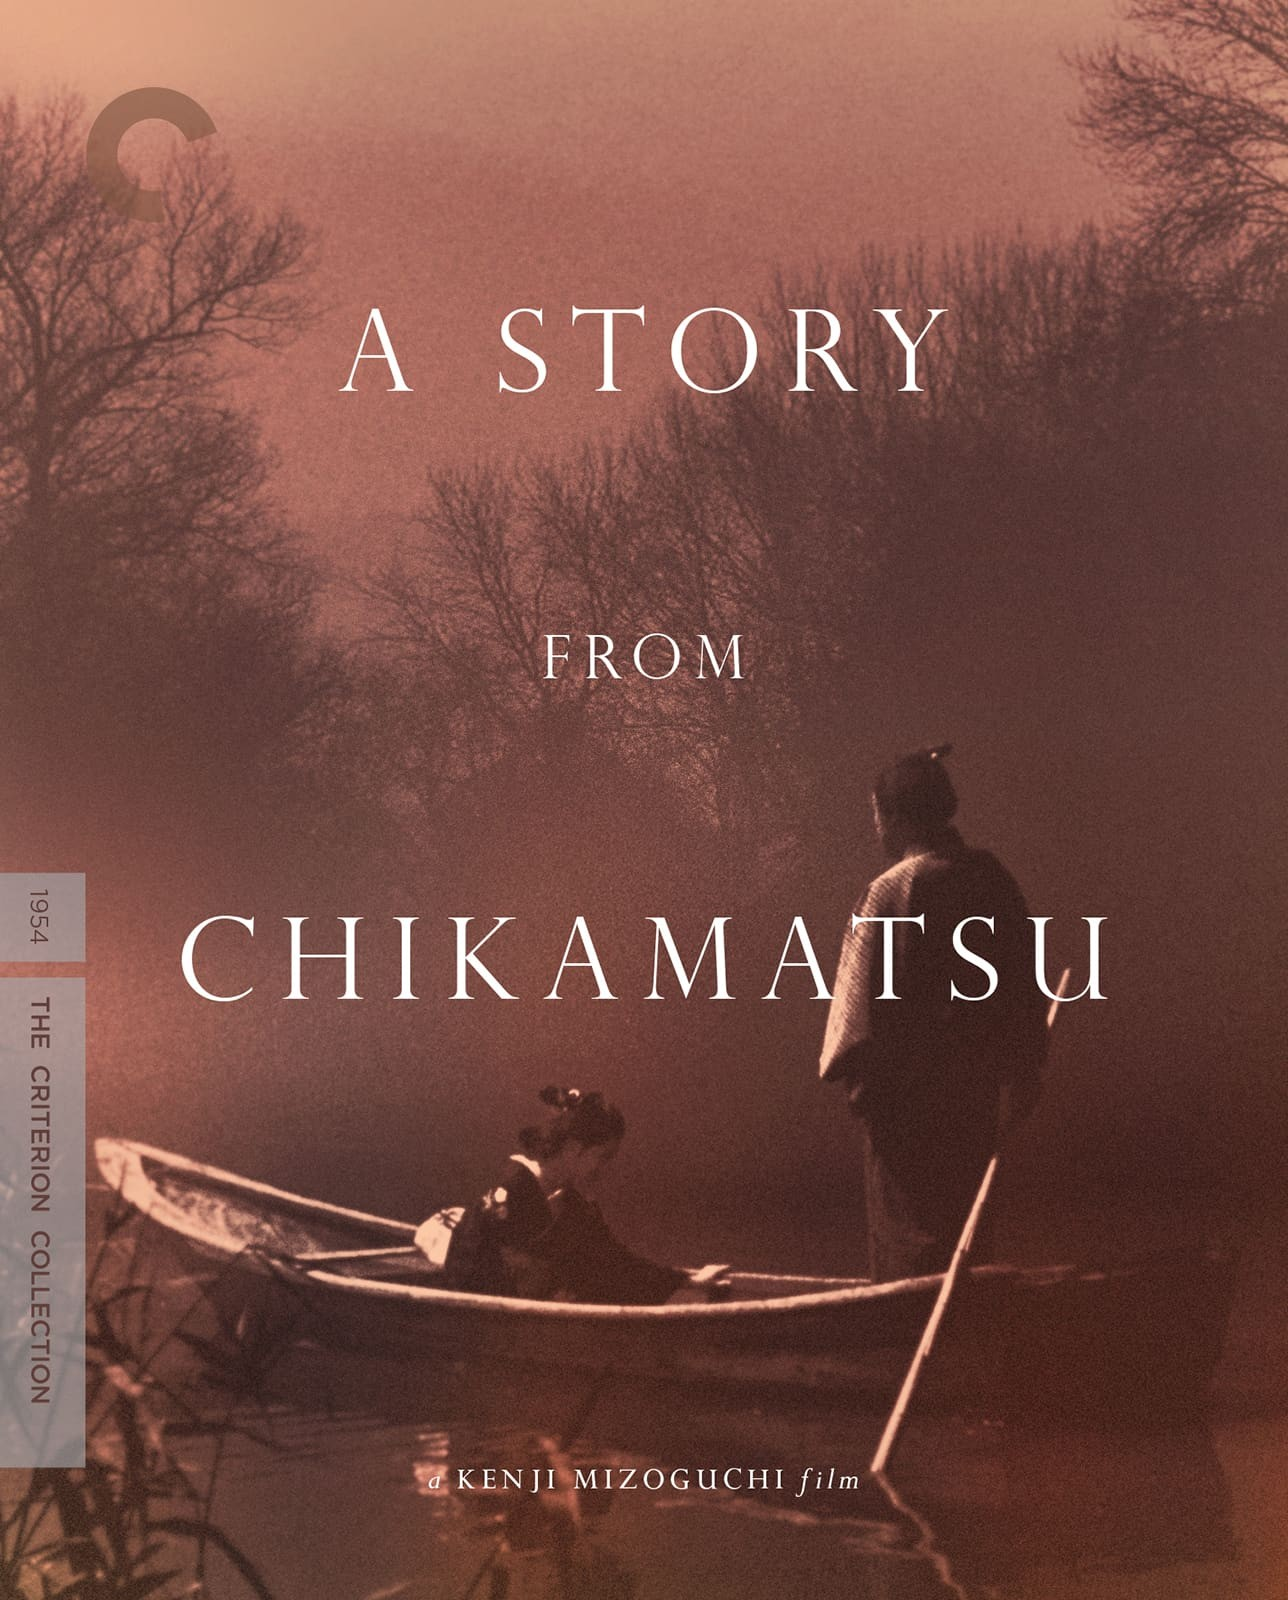 A Story from Chikamatsu (1954) | The Criterion Collection